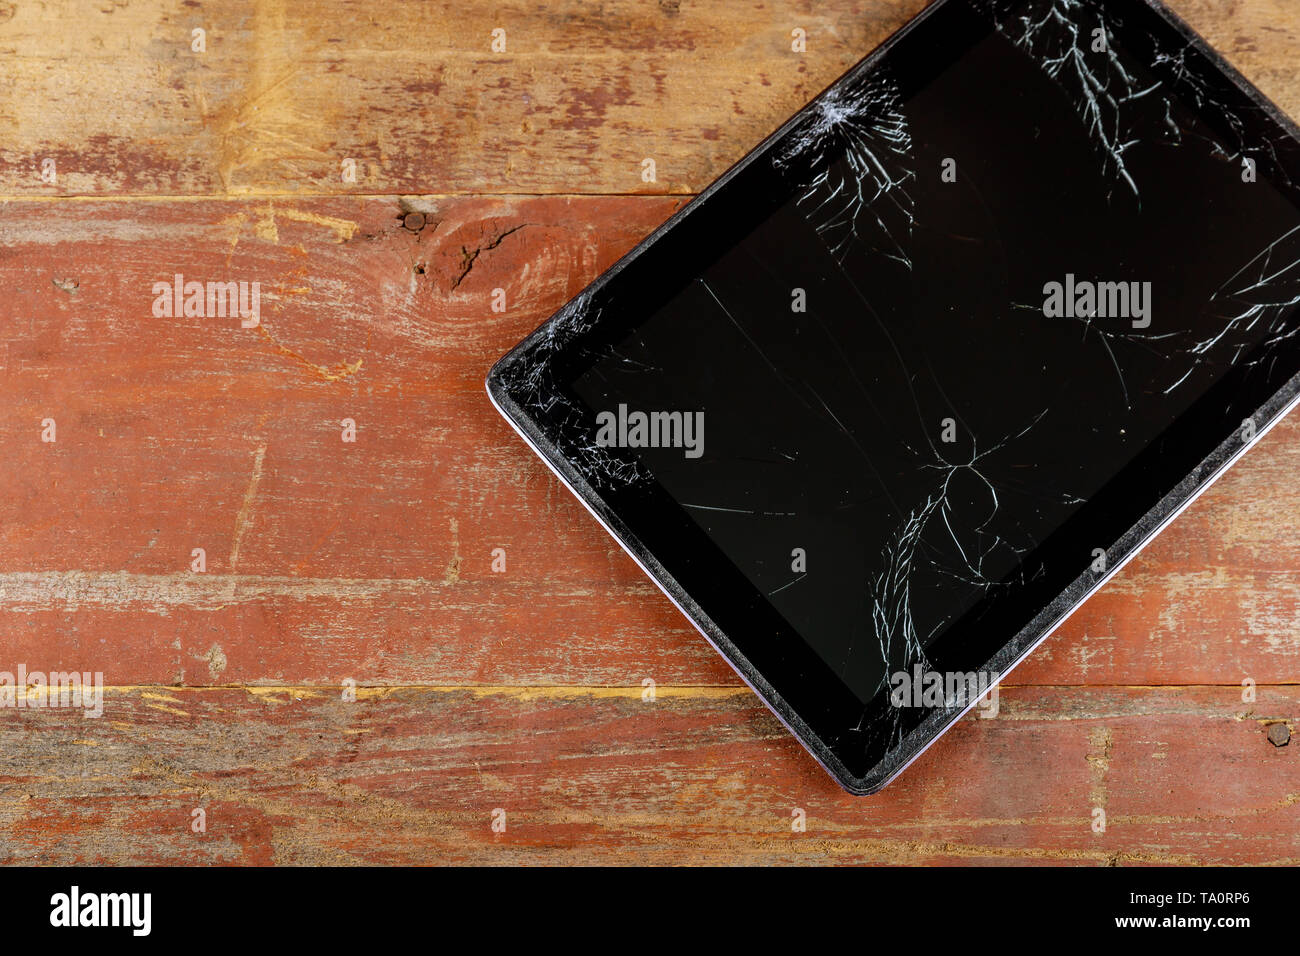 Digital tablet with broken glass screen on the wood background - Stock Image